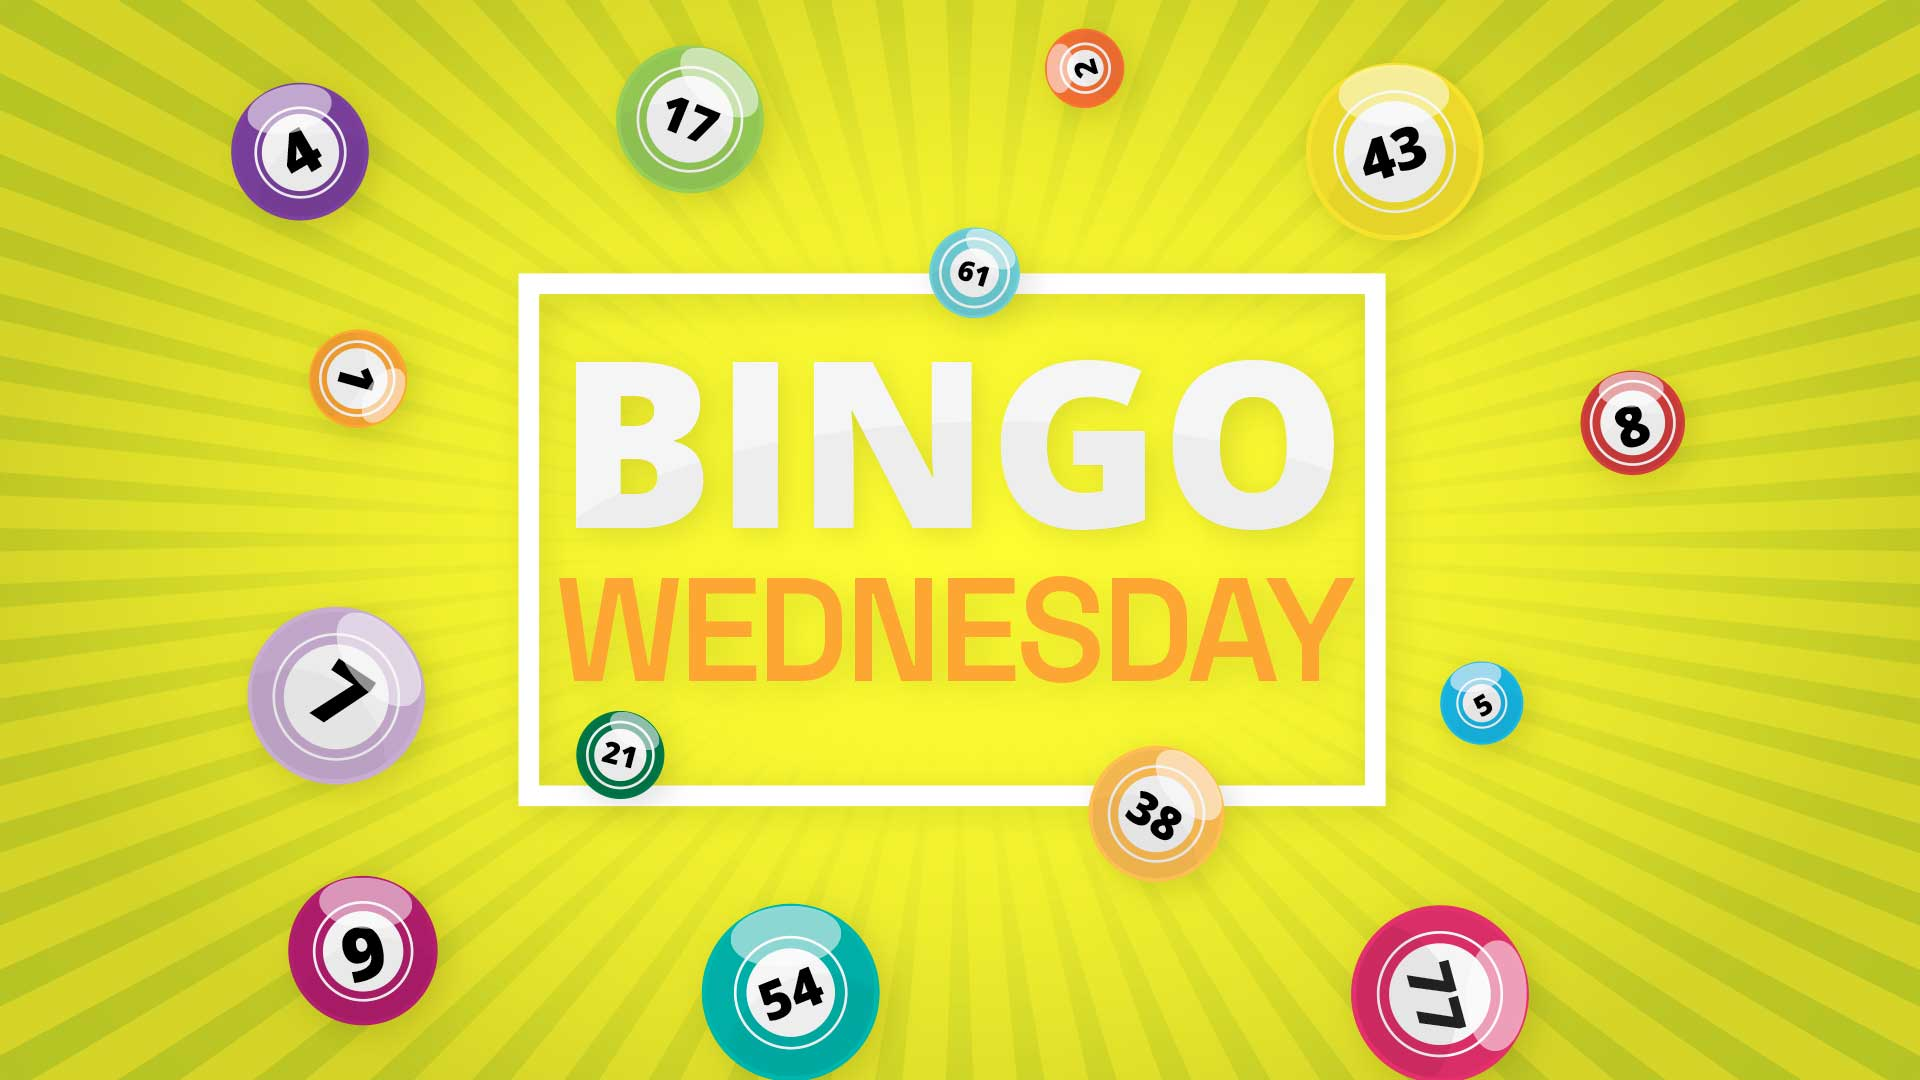 Bingo - Wednesday Session